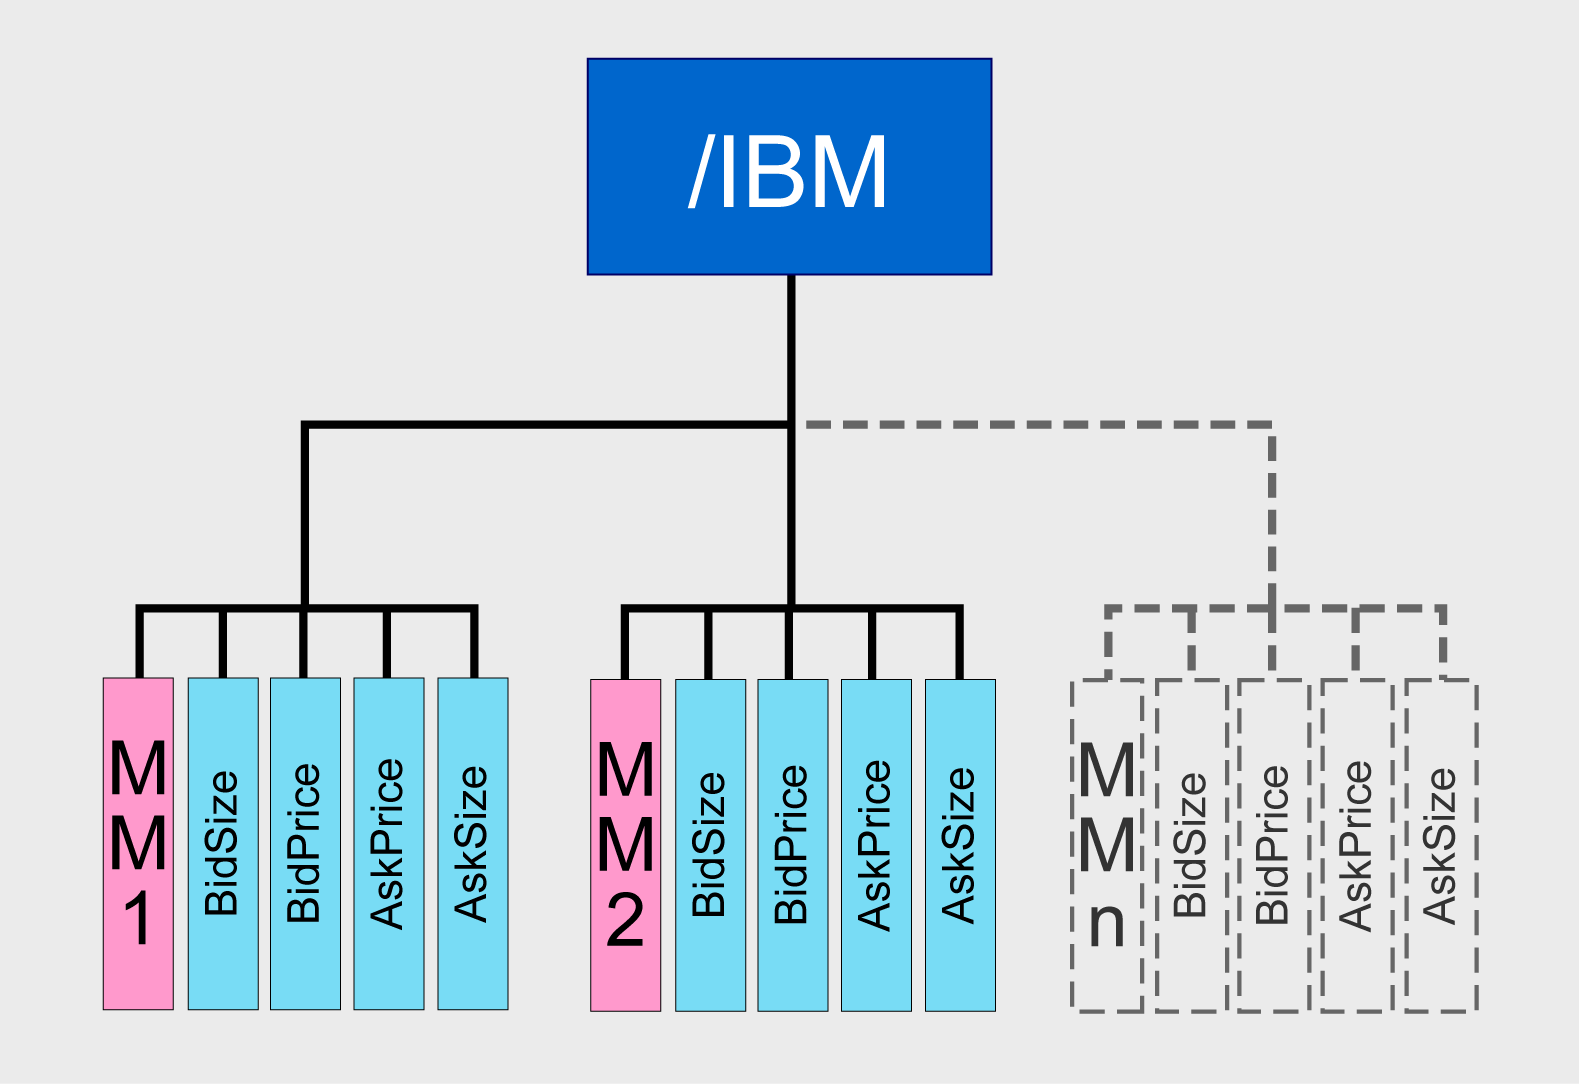 Diagram of type 2 data structure in a record